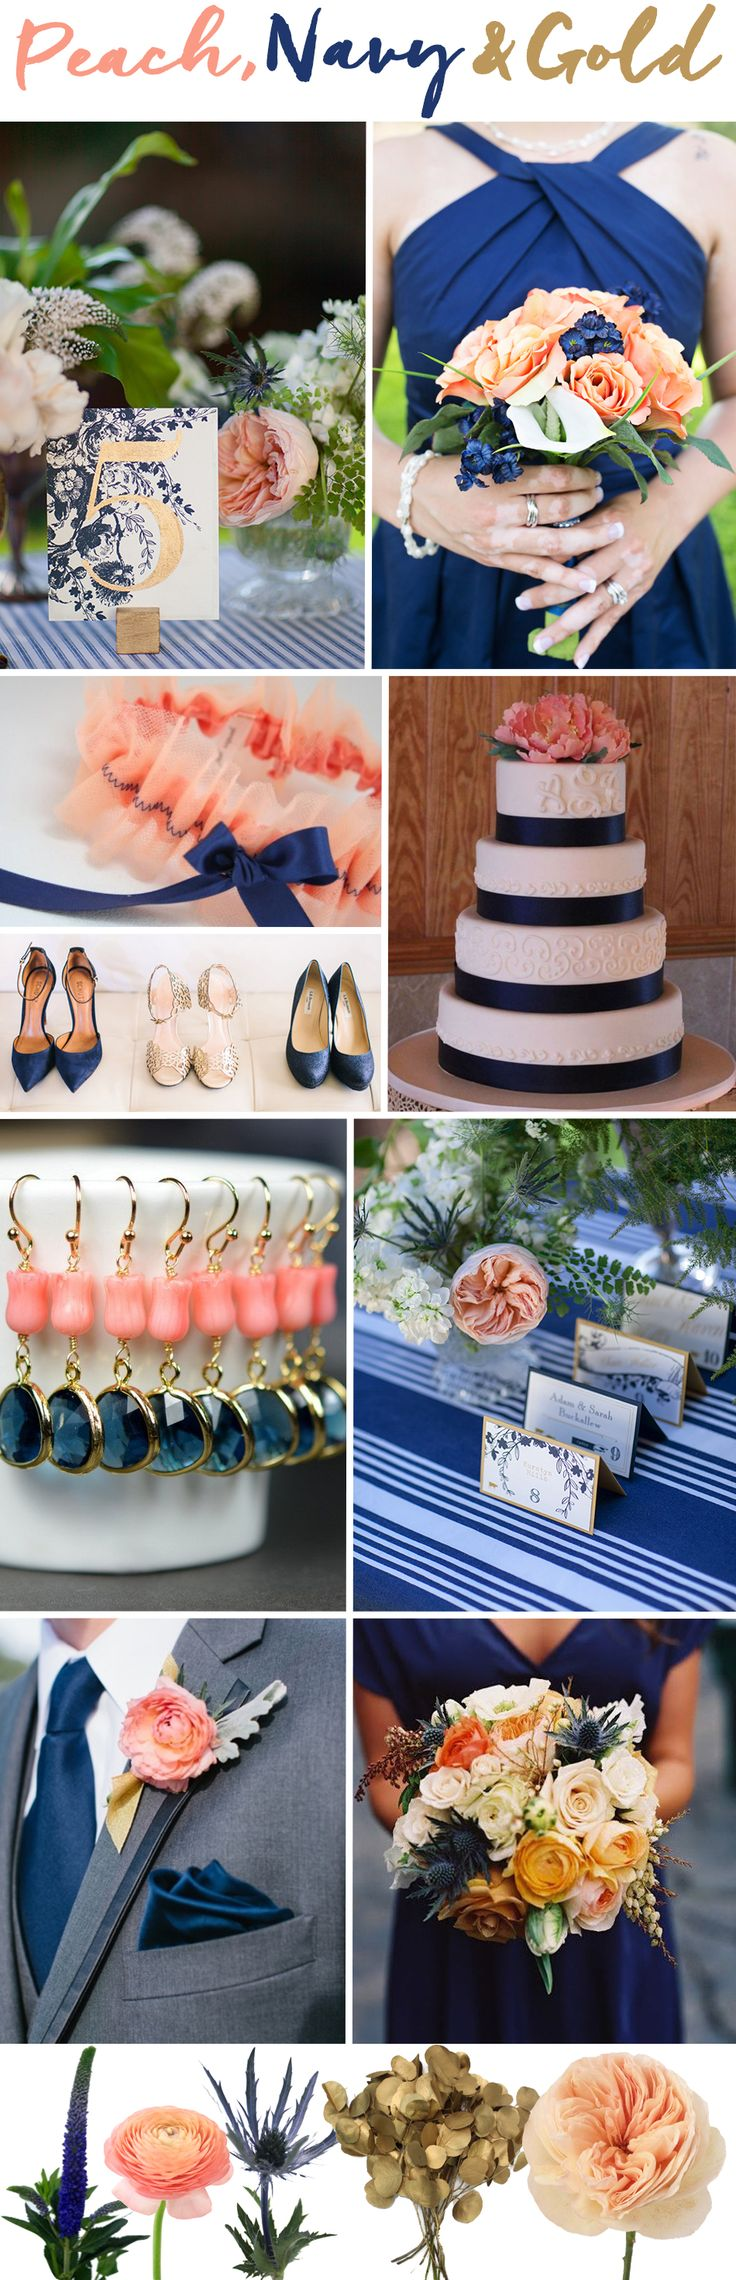 When it comes to color palettes, opting for a pastel color paired with a dark color and adding in some metallics is a safe bet for success. One such winning combination is peach and navy with pops of gold.